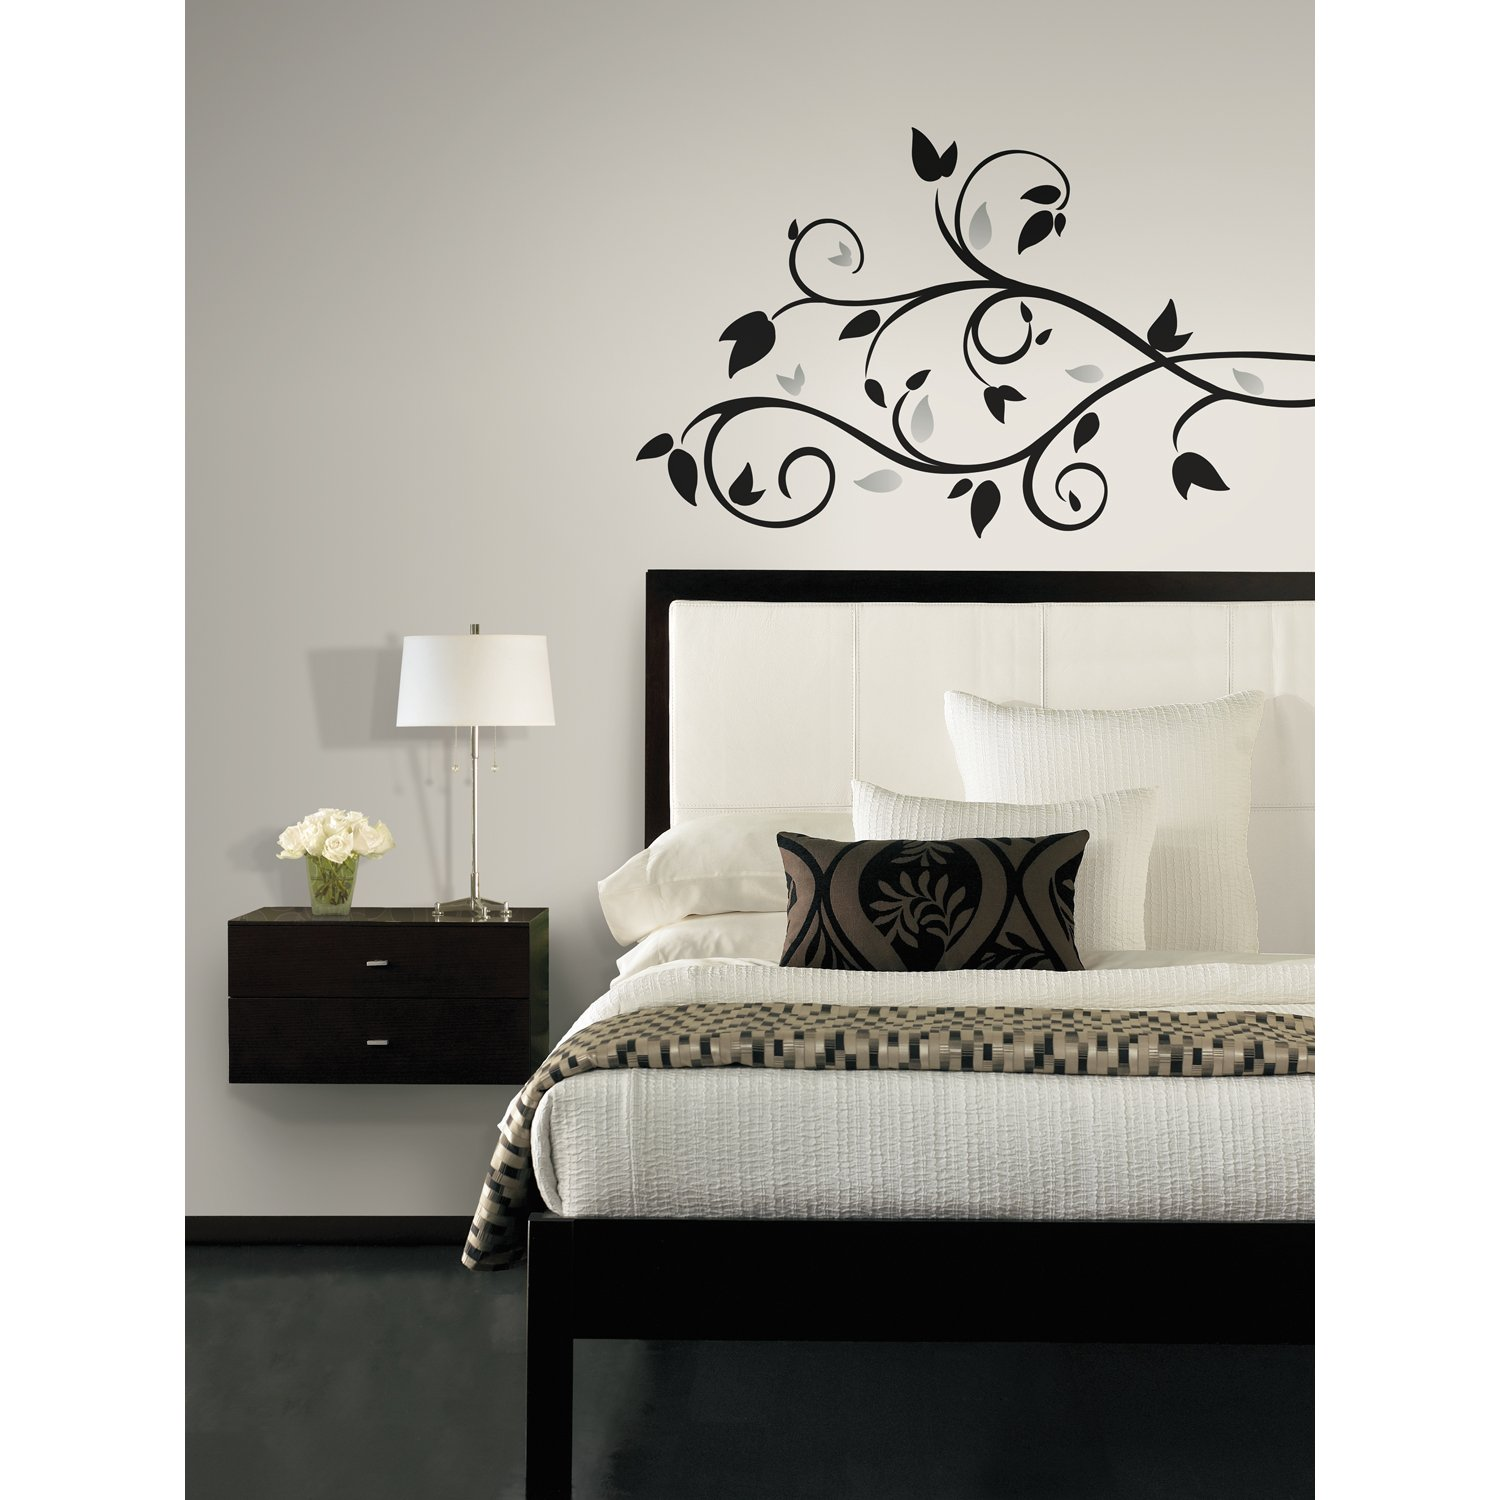 Superieur RoomMates RMK1799SCS Scroll Branch Foil Leaves Peel And Stick Wall Decals    Decorative Wall Appliques   Amazon.com